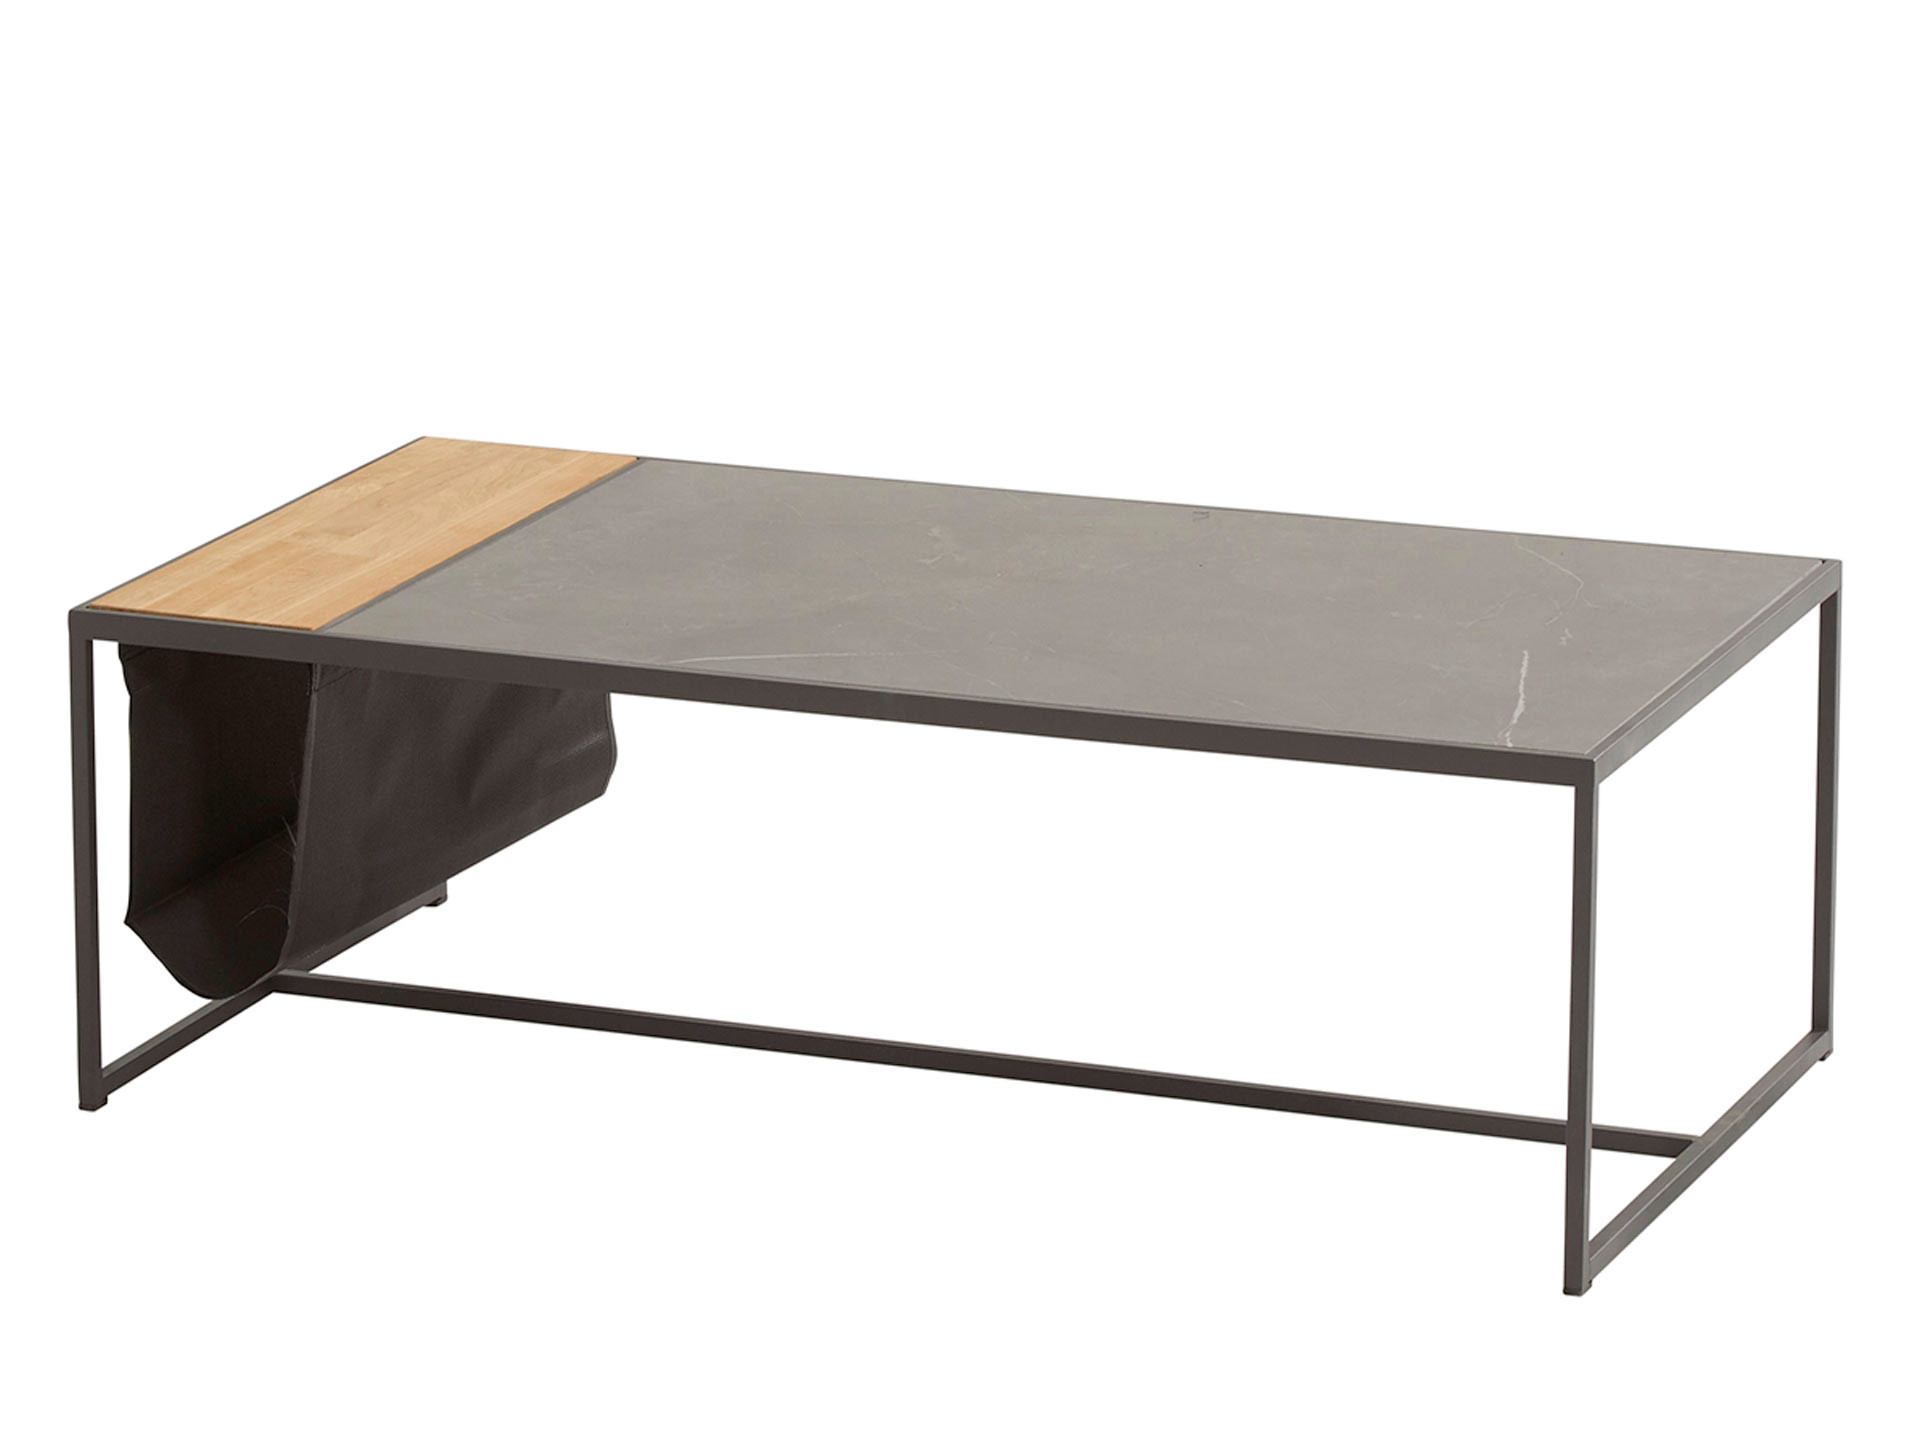 Atlas coffee table ceramic rectangular 122 x 62 x 35 cm